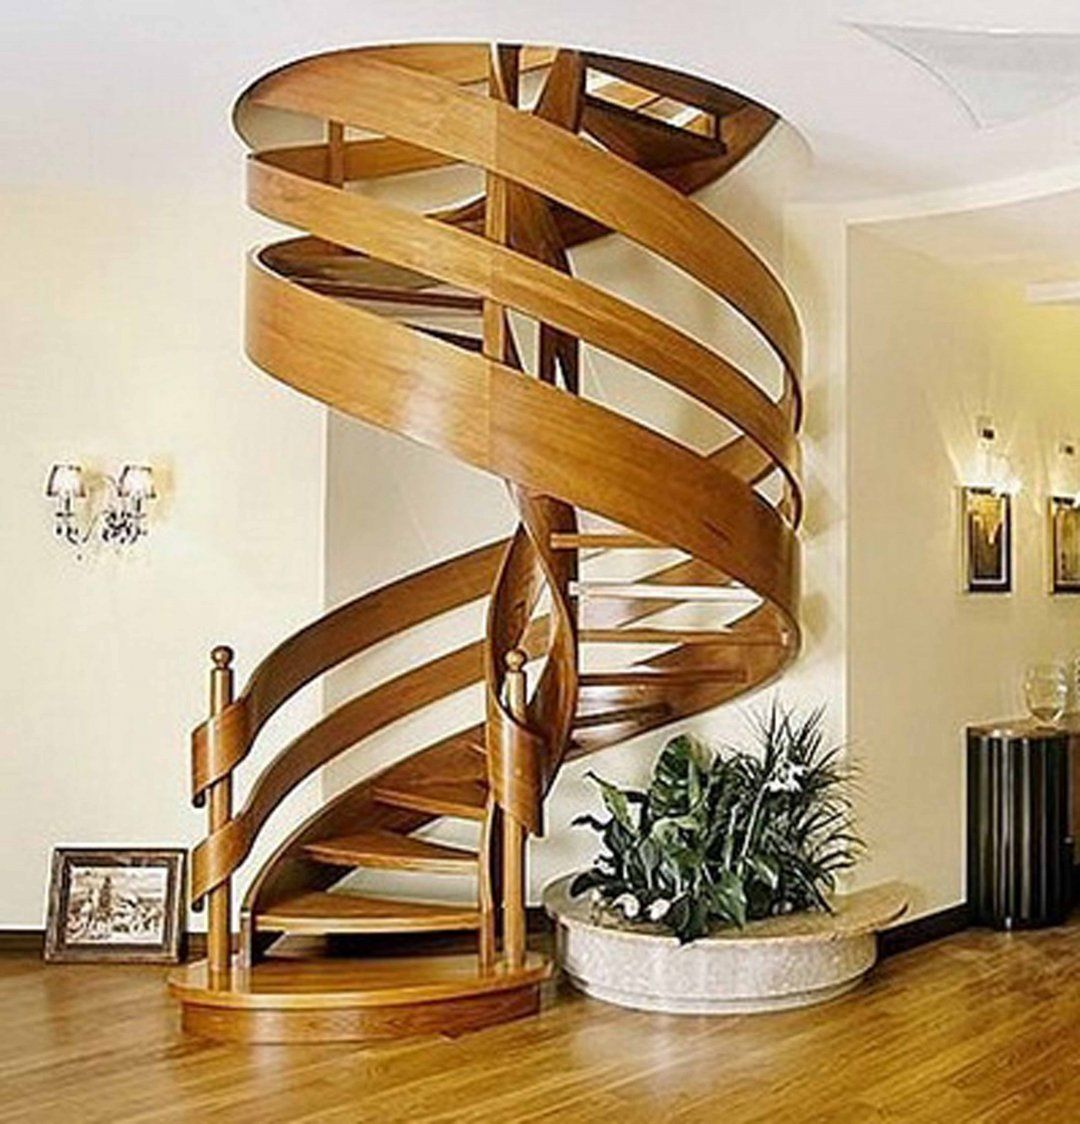 Wooden Staircase Designs For Homes Interior Design How To Build Stair Stringers Designer Stair Staircase Interior Design Stairway Design Stairs Design Interior